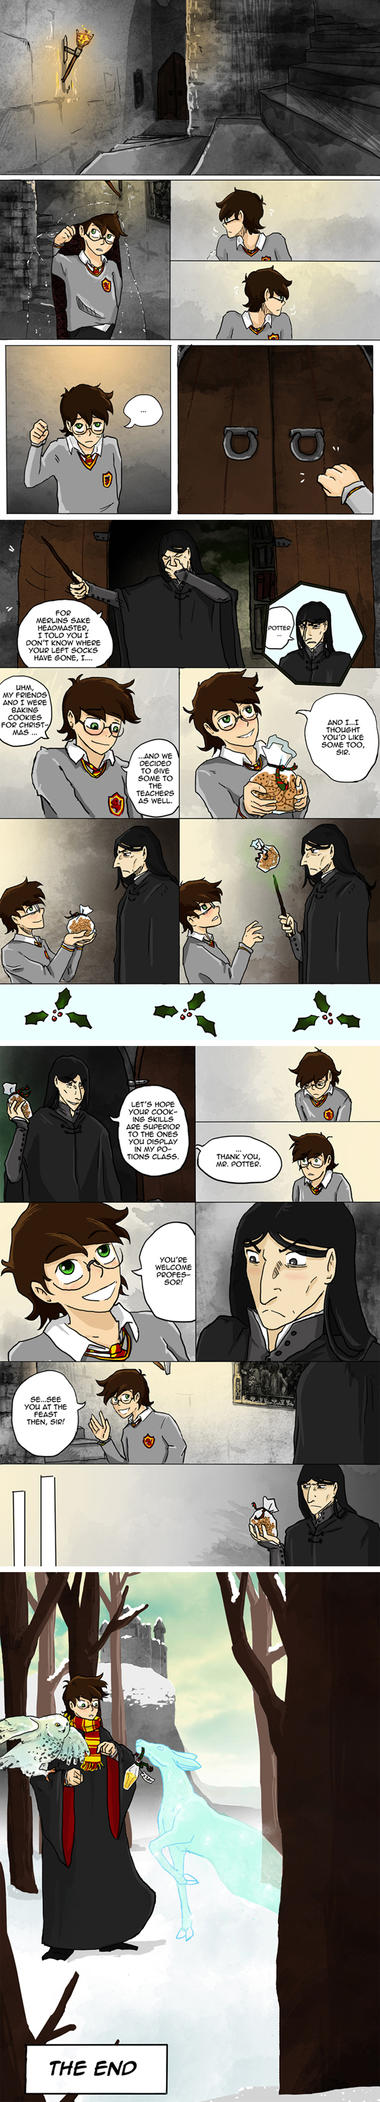 More Cookies for Severus by Thrumugnyr